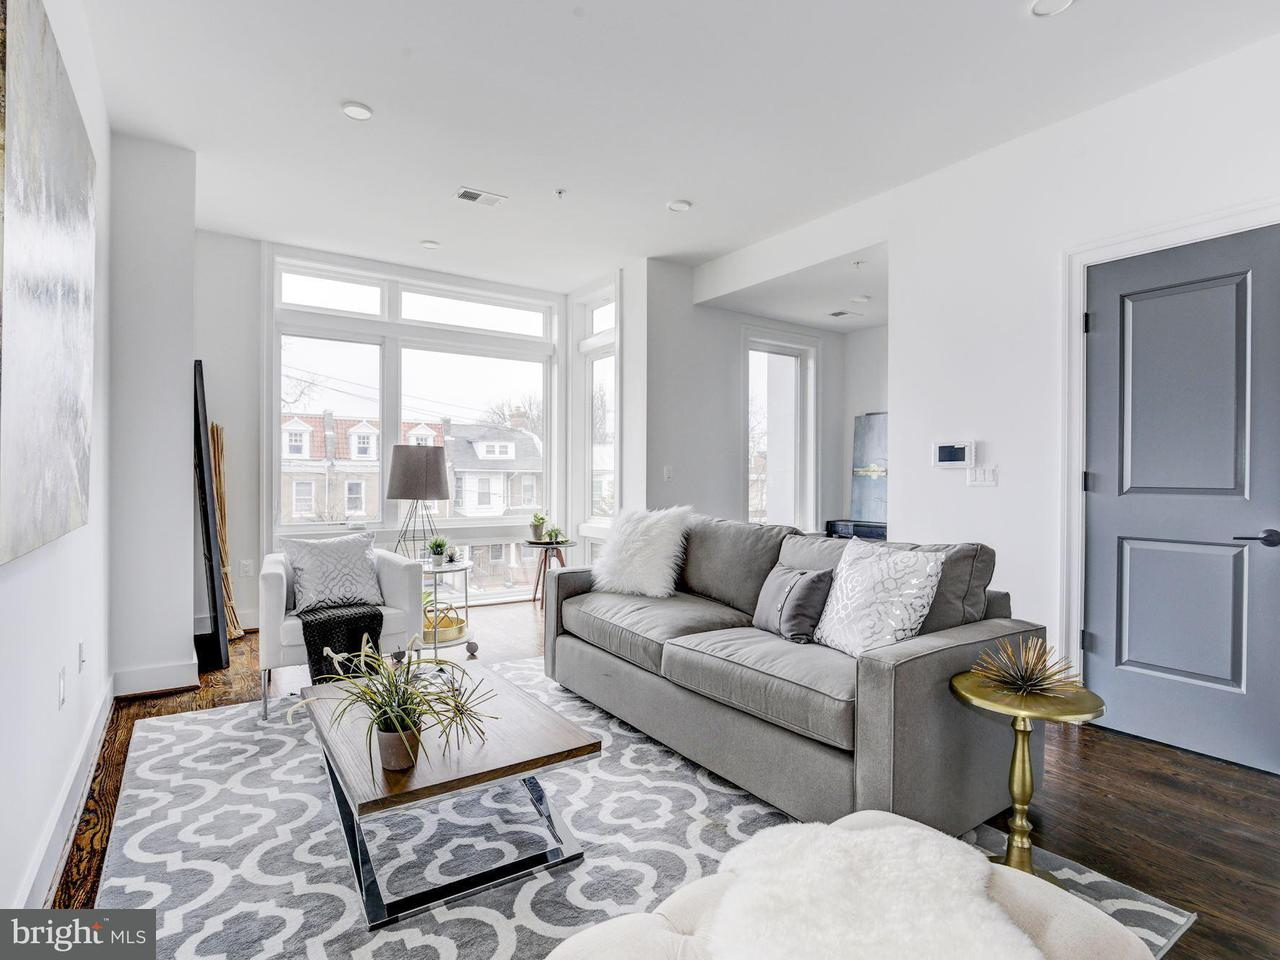 Single Family Home for Sale at 4201 8th St Nw #1 4201 8th St Nw #1 Washington, District Of Columbia 20011 United States